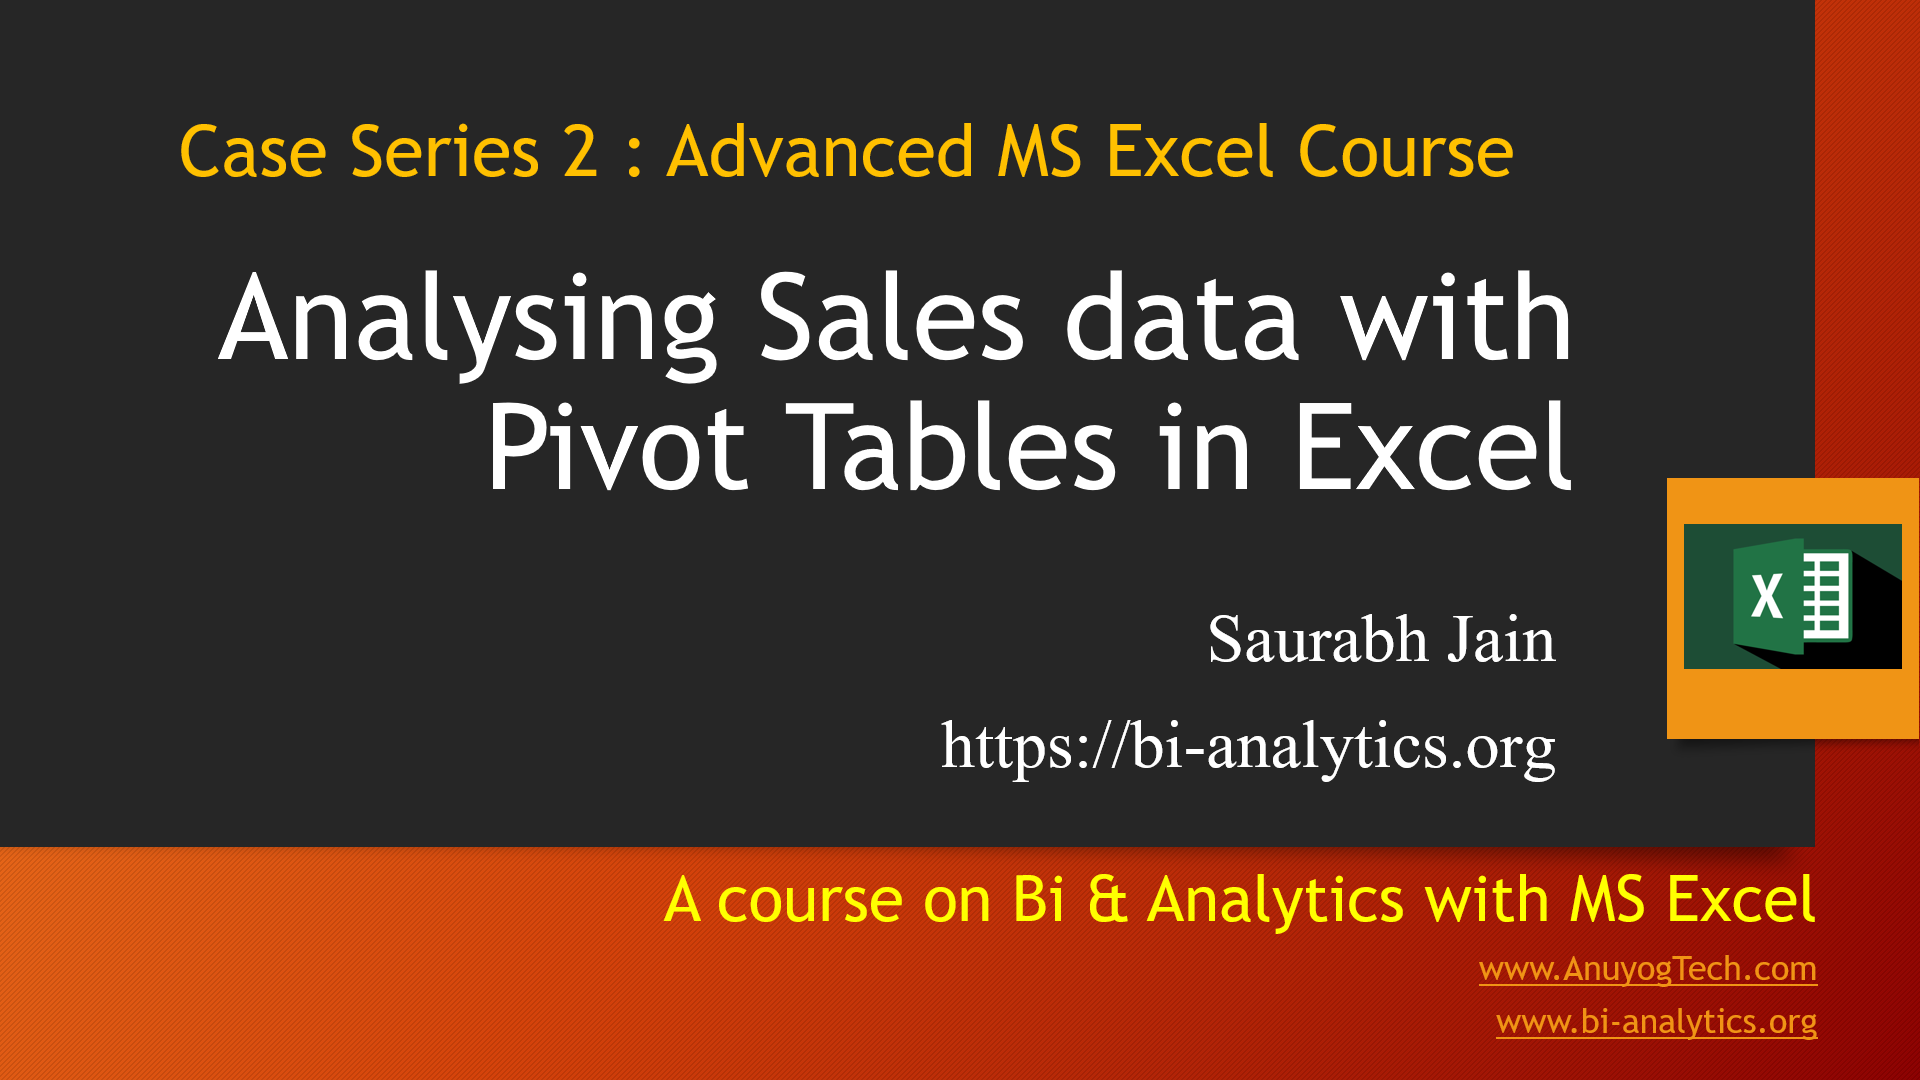 Case Series 2 : Analyzing Sales data with Pivot Table